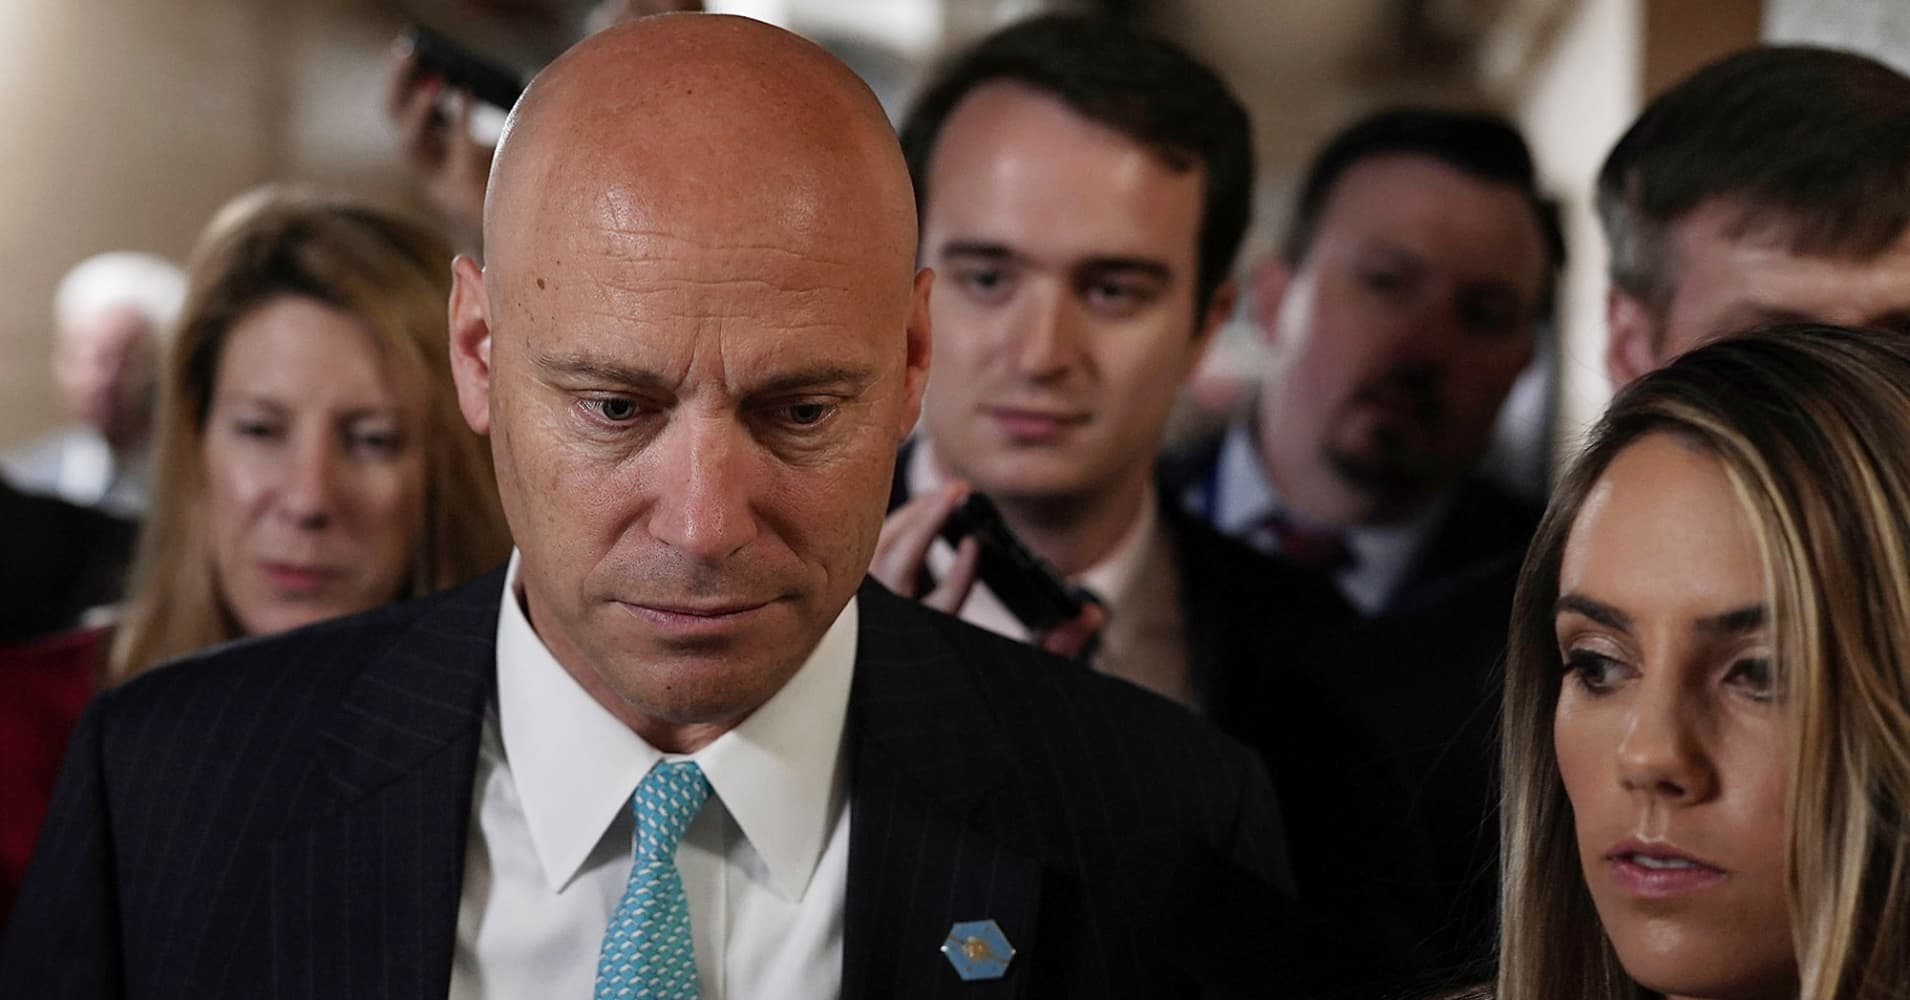 Ex-Trump aide Marc Short will be Vice President Mike Pence's chief of staff